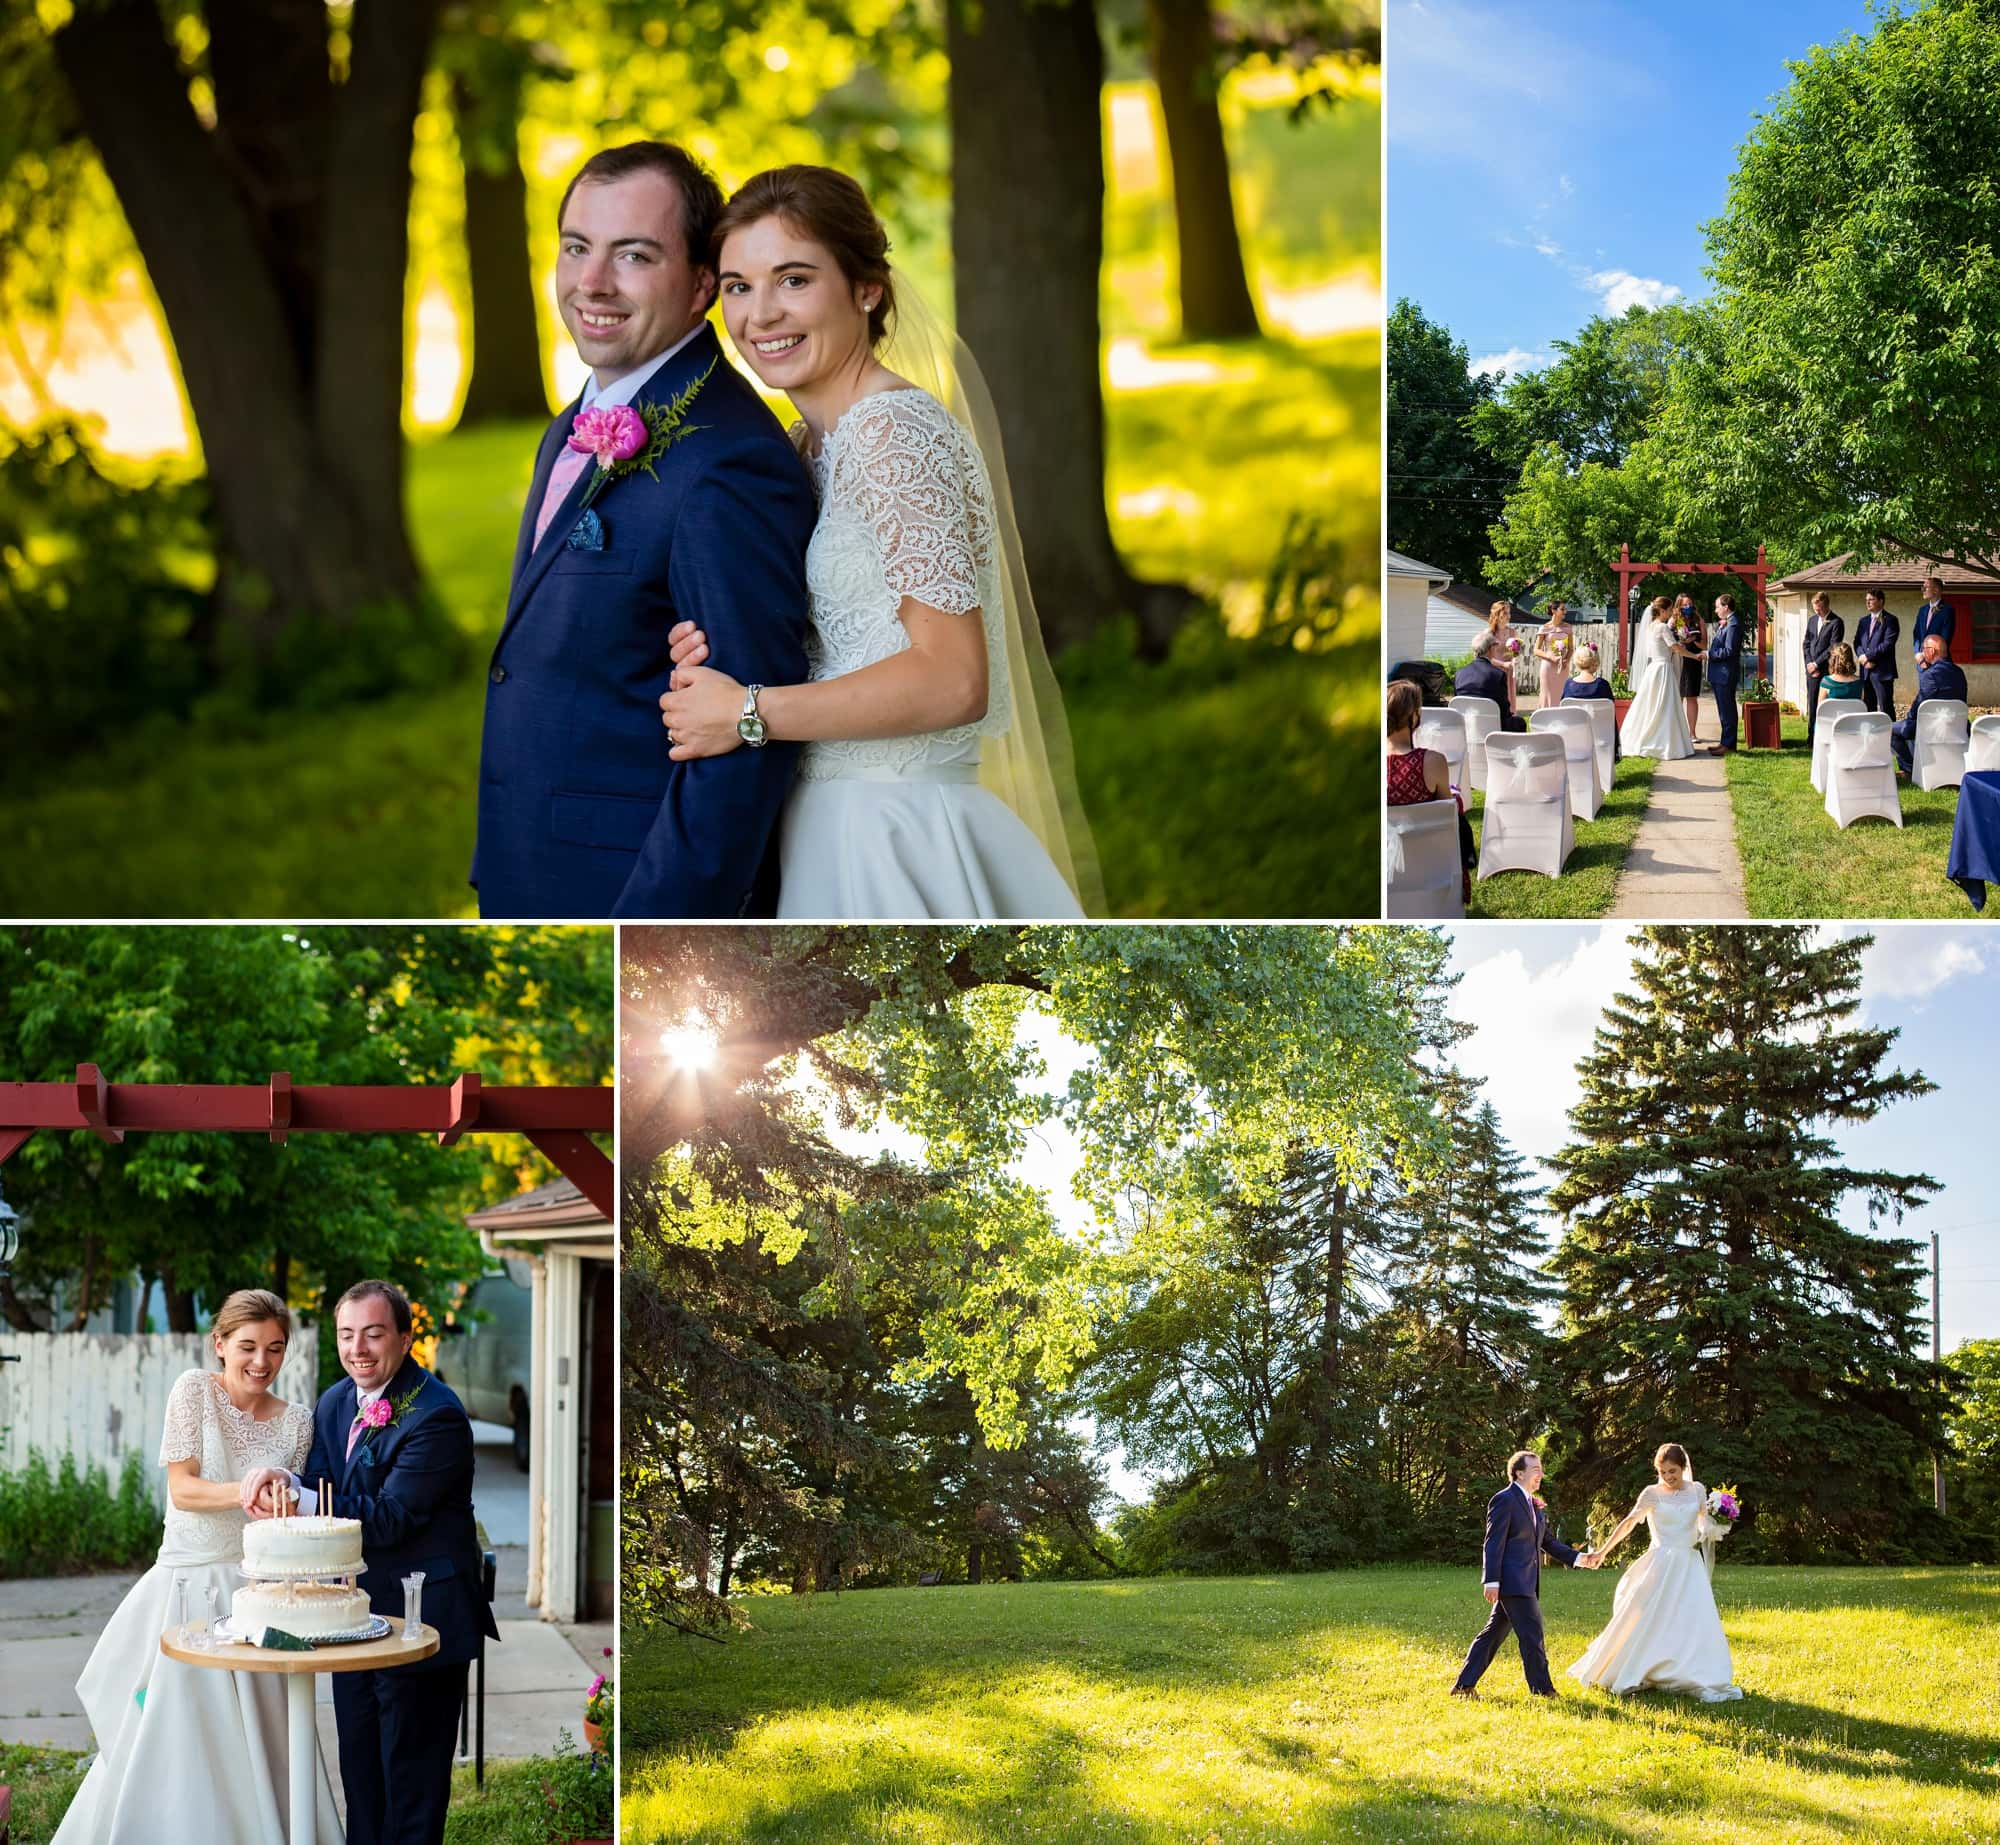 Images of bride and groom, Claire and Shane, at a backyard wedding in Northeast Minneapolis.